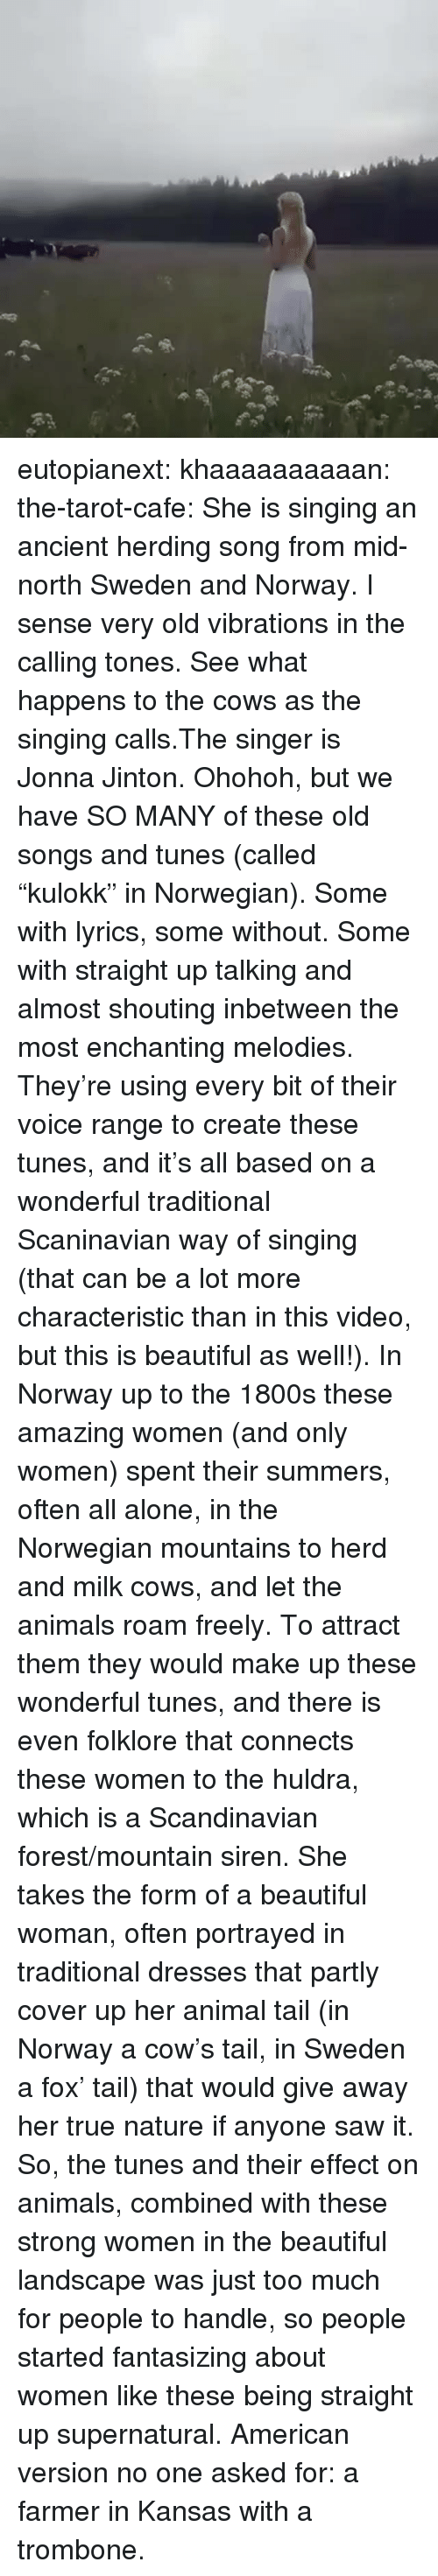 """herding: eutopianext:  khaaaaaaaaaan:  the-tarot-cafe:   She is singing an ancient herding song from mid-north Sweden and Norway. I sense very old vibrations in the calling tones. See what happens to the cows as the singing calls.The singer is Jonna Jinton.   Ohohoh, but we have SO MANY of these old songs and tunes (called """"kulokk"""" in Norwegian). Some with lyrics, some without. Some with straight up talking and almost shouting inbetween the most enchanting melodies. They're using every bit of their voice range to create these tunes, and it's all based on a wonderful traditional Scaninavian way of singing (that can be a lot more characteristic than in this video, but this is beautiful as well!).  In Norway up to the 1800s these amazing women (and only women) spent their summers, often all alone, in the Norwegian mountains to herd and milk cows, and let the animals roam freely. To attract them they would make up these wonderful tunes, and there is even folklore that connects these women to the huldra, which is a Scandinavian forest/mountain siren. She takes the form of a beautiful woman, often portrayed in traditional dresses that partly cover up her animal tail (in Norway a cow's tail, in Sweden a fox' tail) that would give away her true nature if anyone saw it.  So, the tunes and their effect on animals, combined with these strong women in the beautiful landscape was just too much for people to handle, so people started fantasizing about women like these being straight up supernatural.  American version no one asked for: a farmer  in Kansas   with a trombone."""